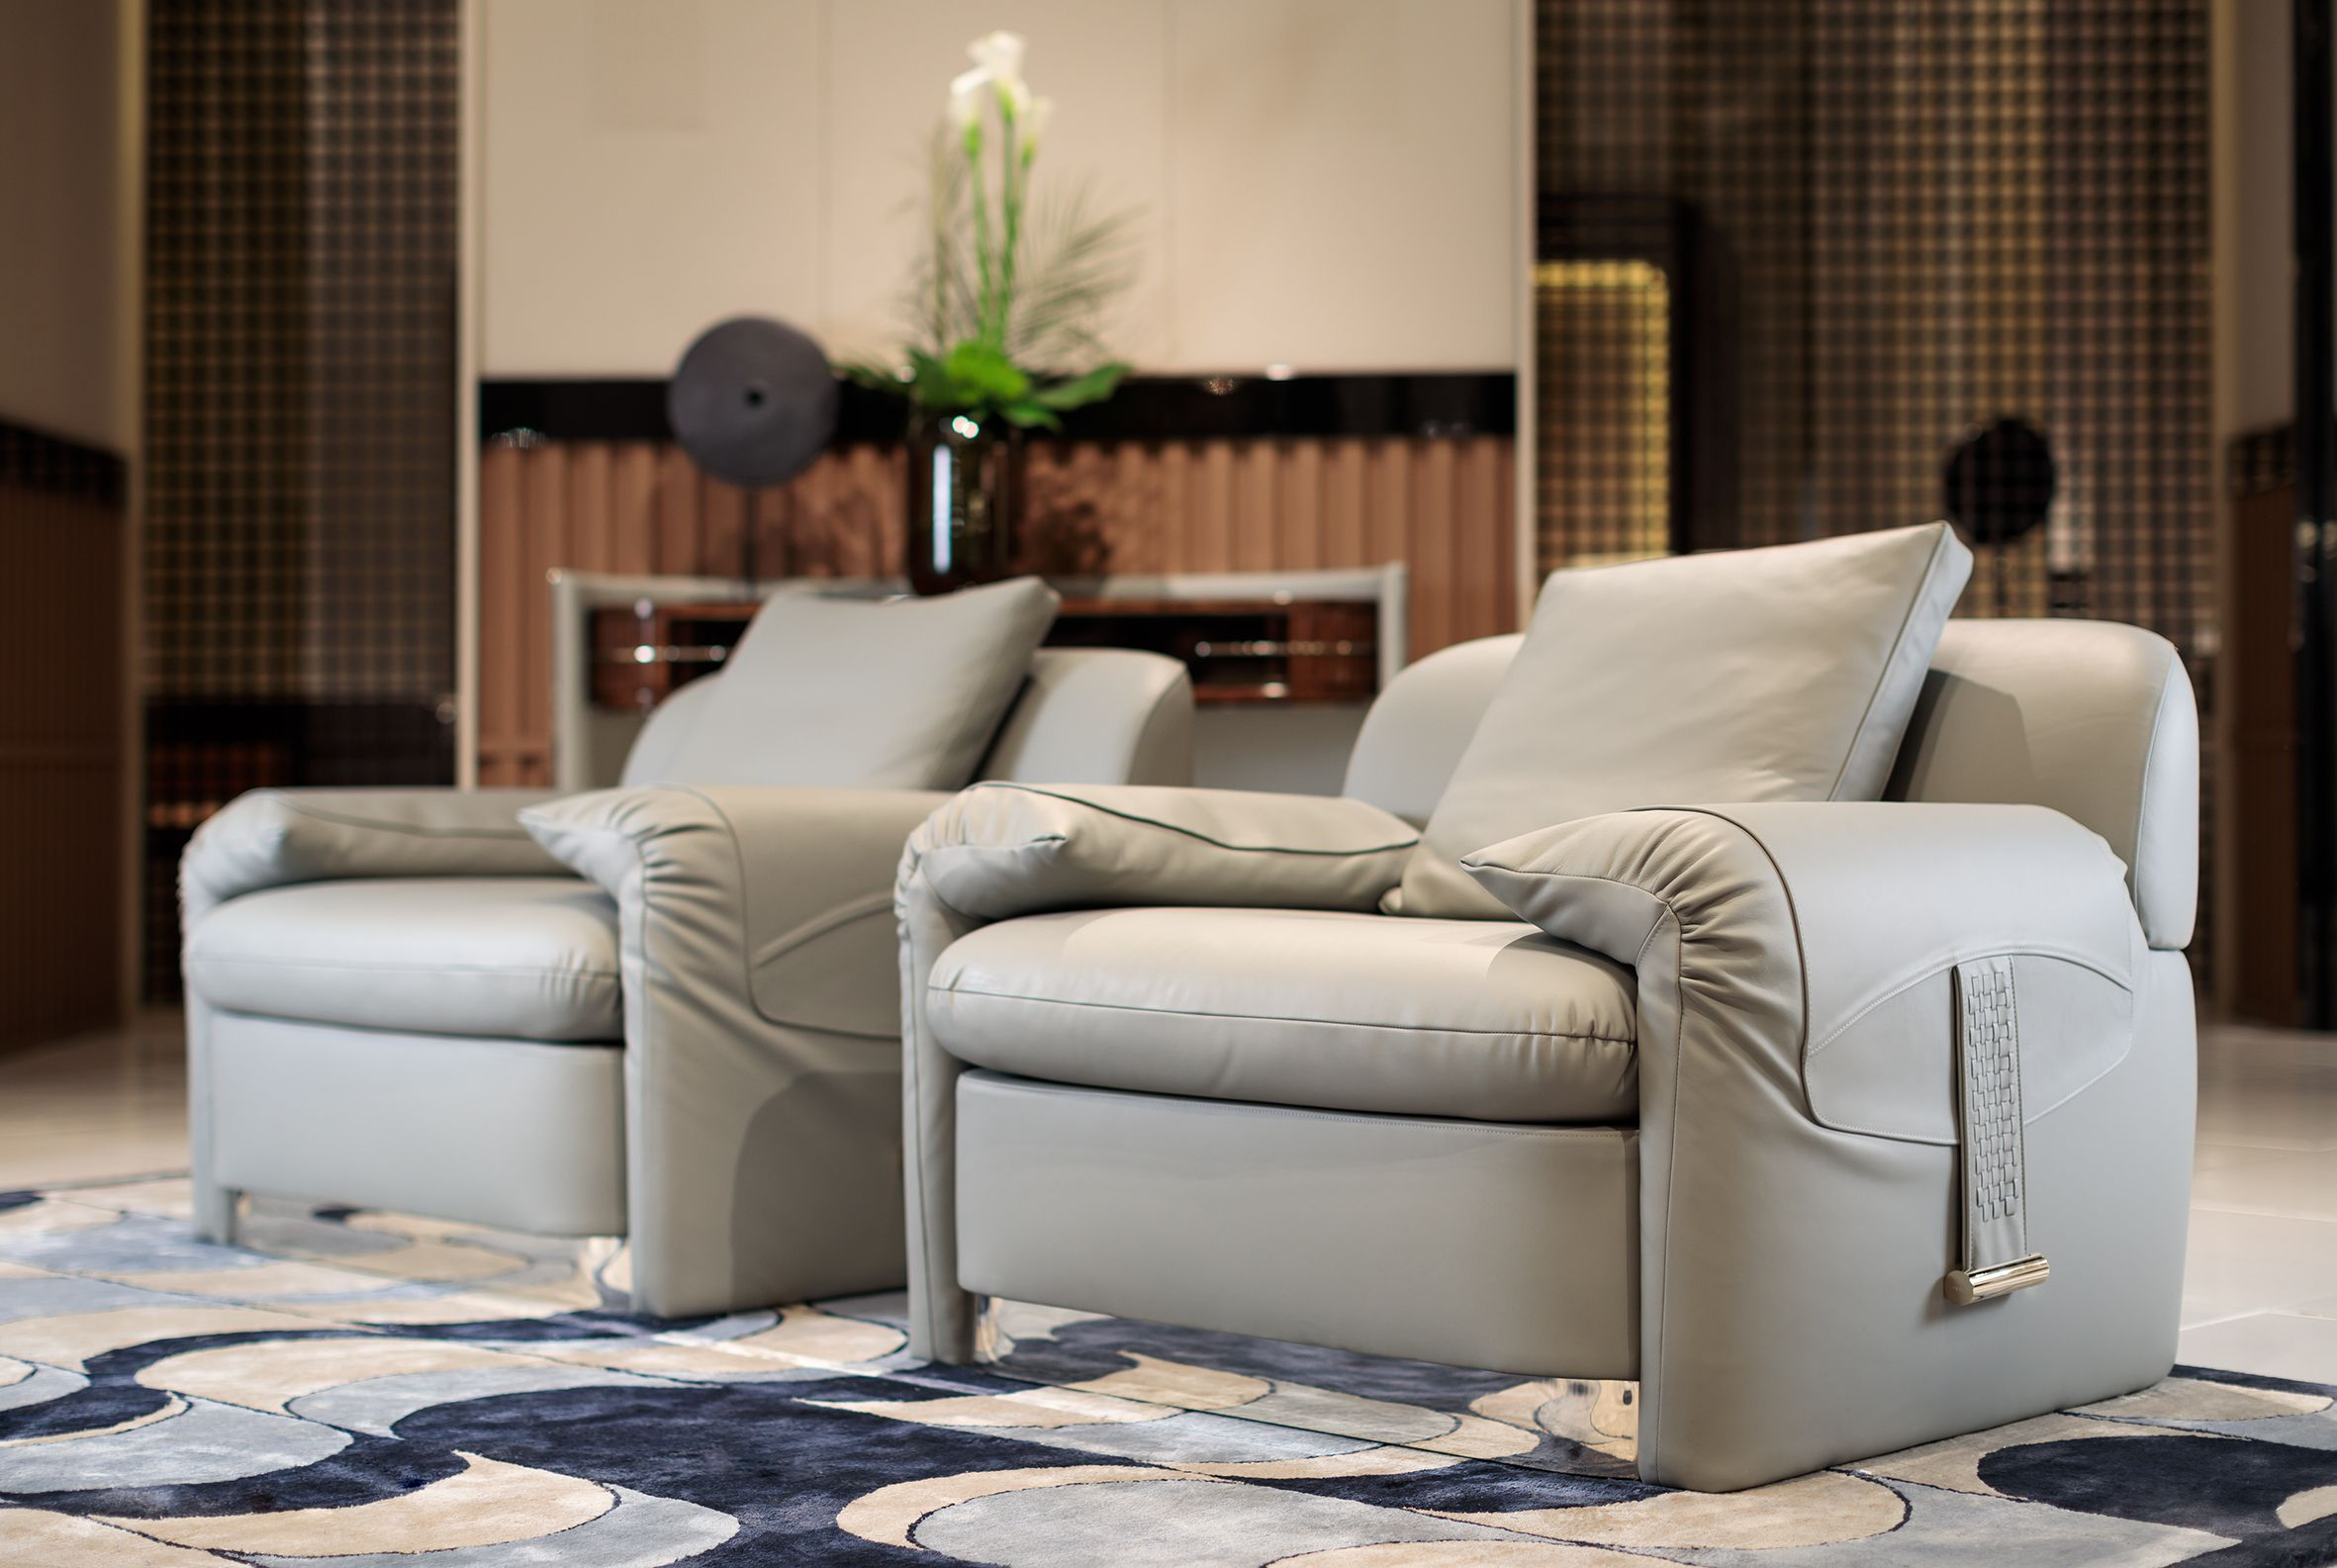 Italian Furniture For Exclusive And Modern Design Furniture